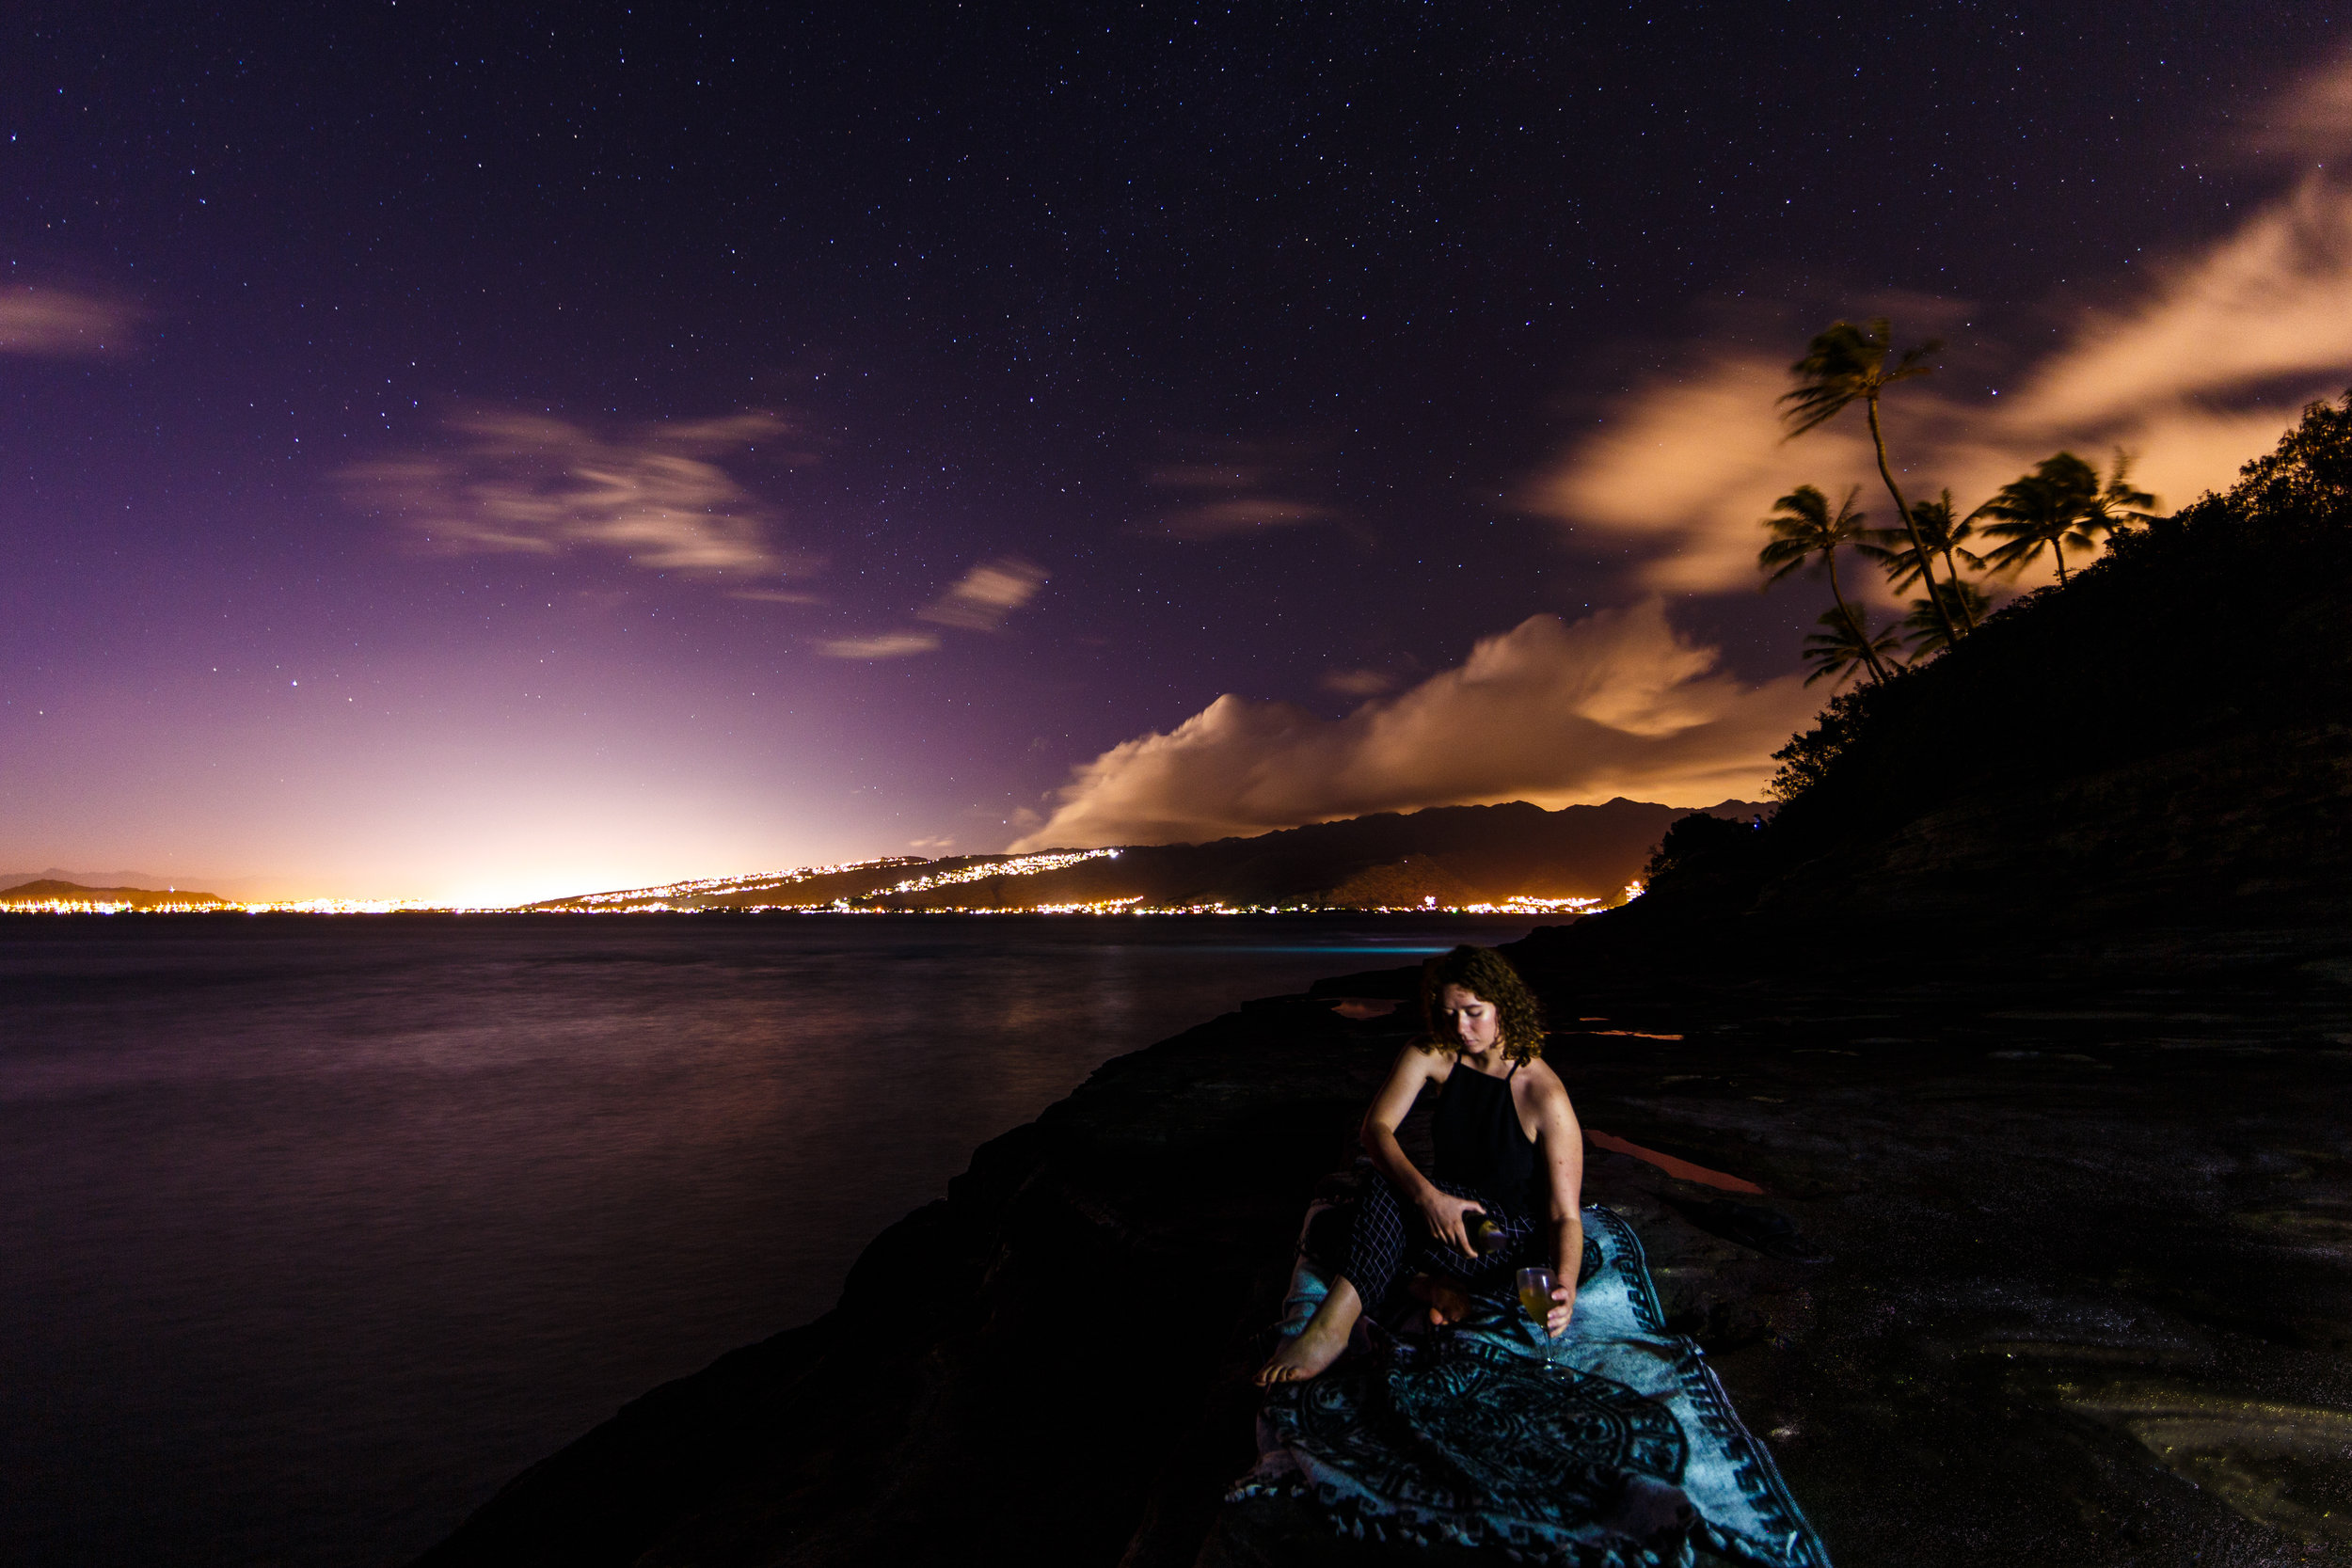 Shot at 14mm f/2.8 ISO 320 for 20 seconds. Subject lit with a LED headlamp.